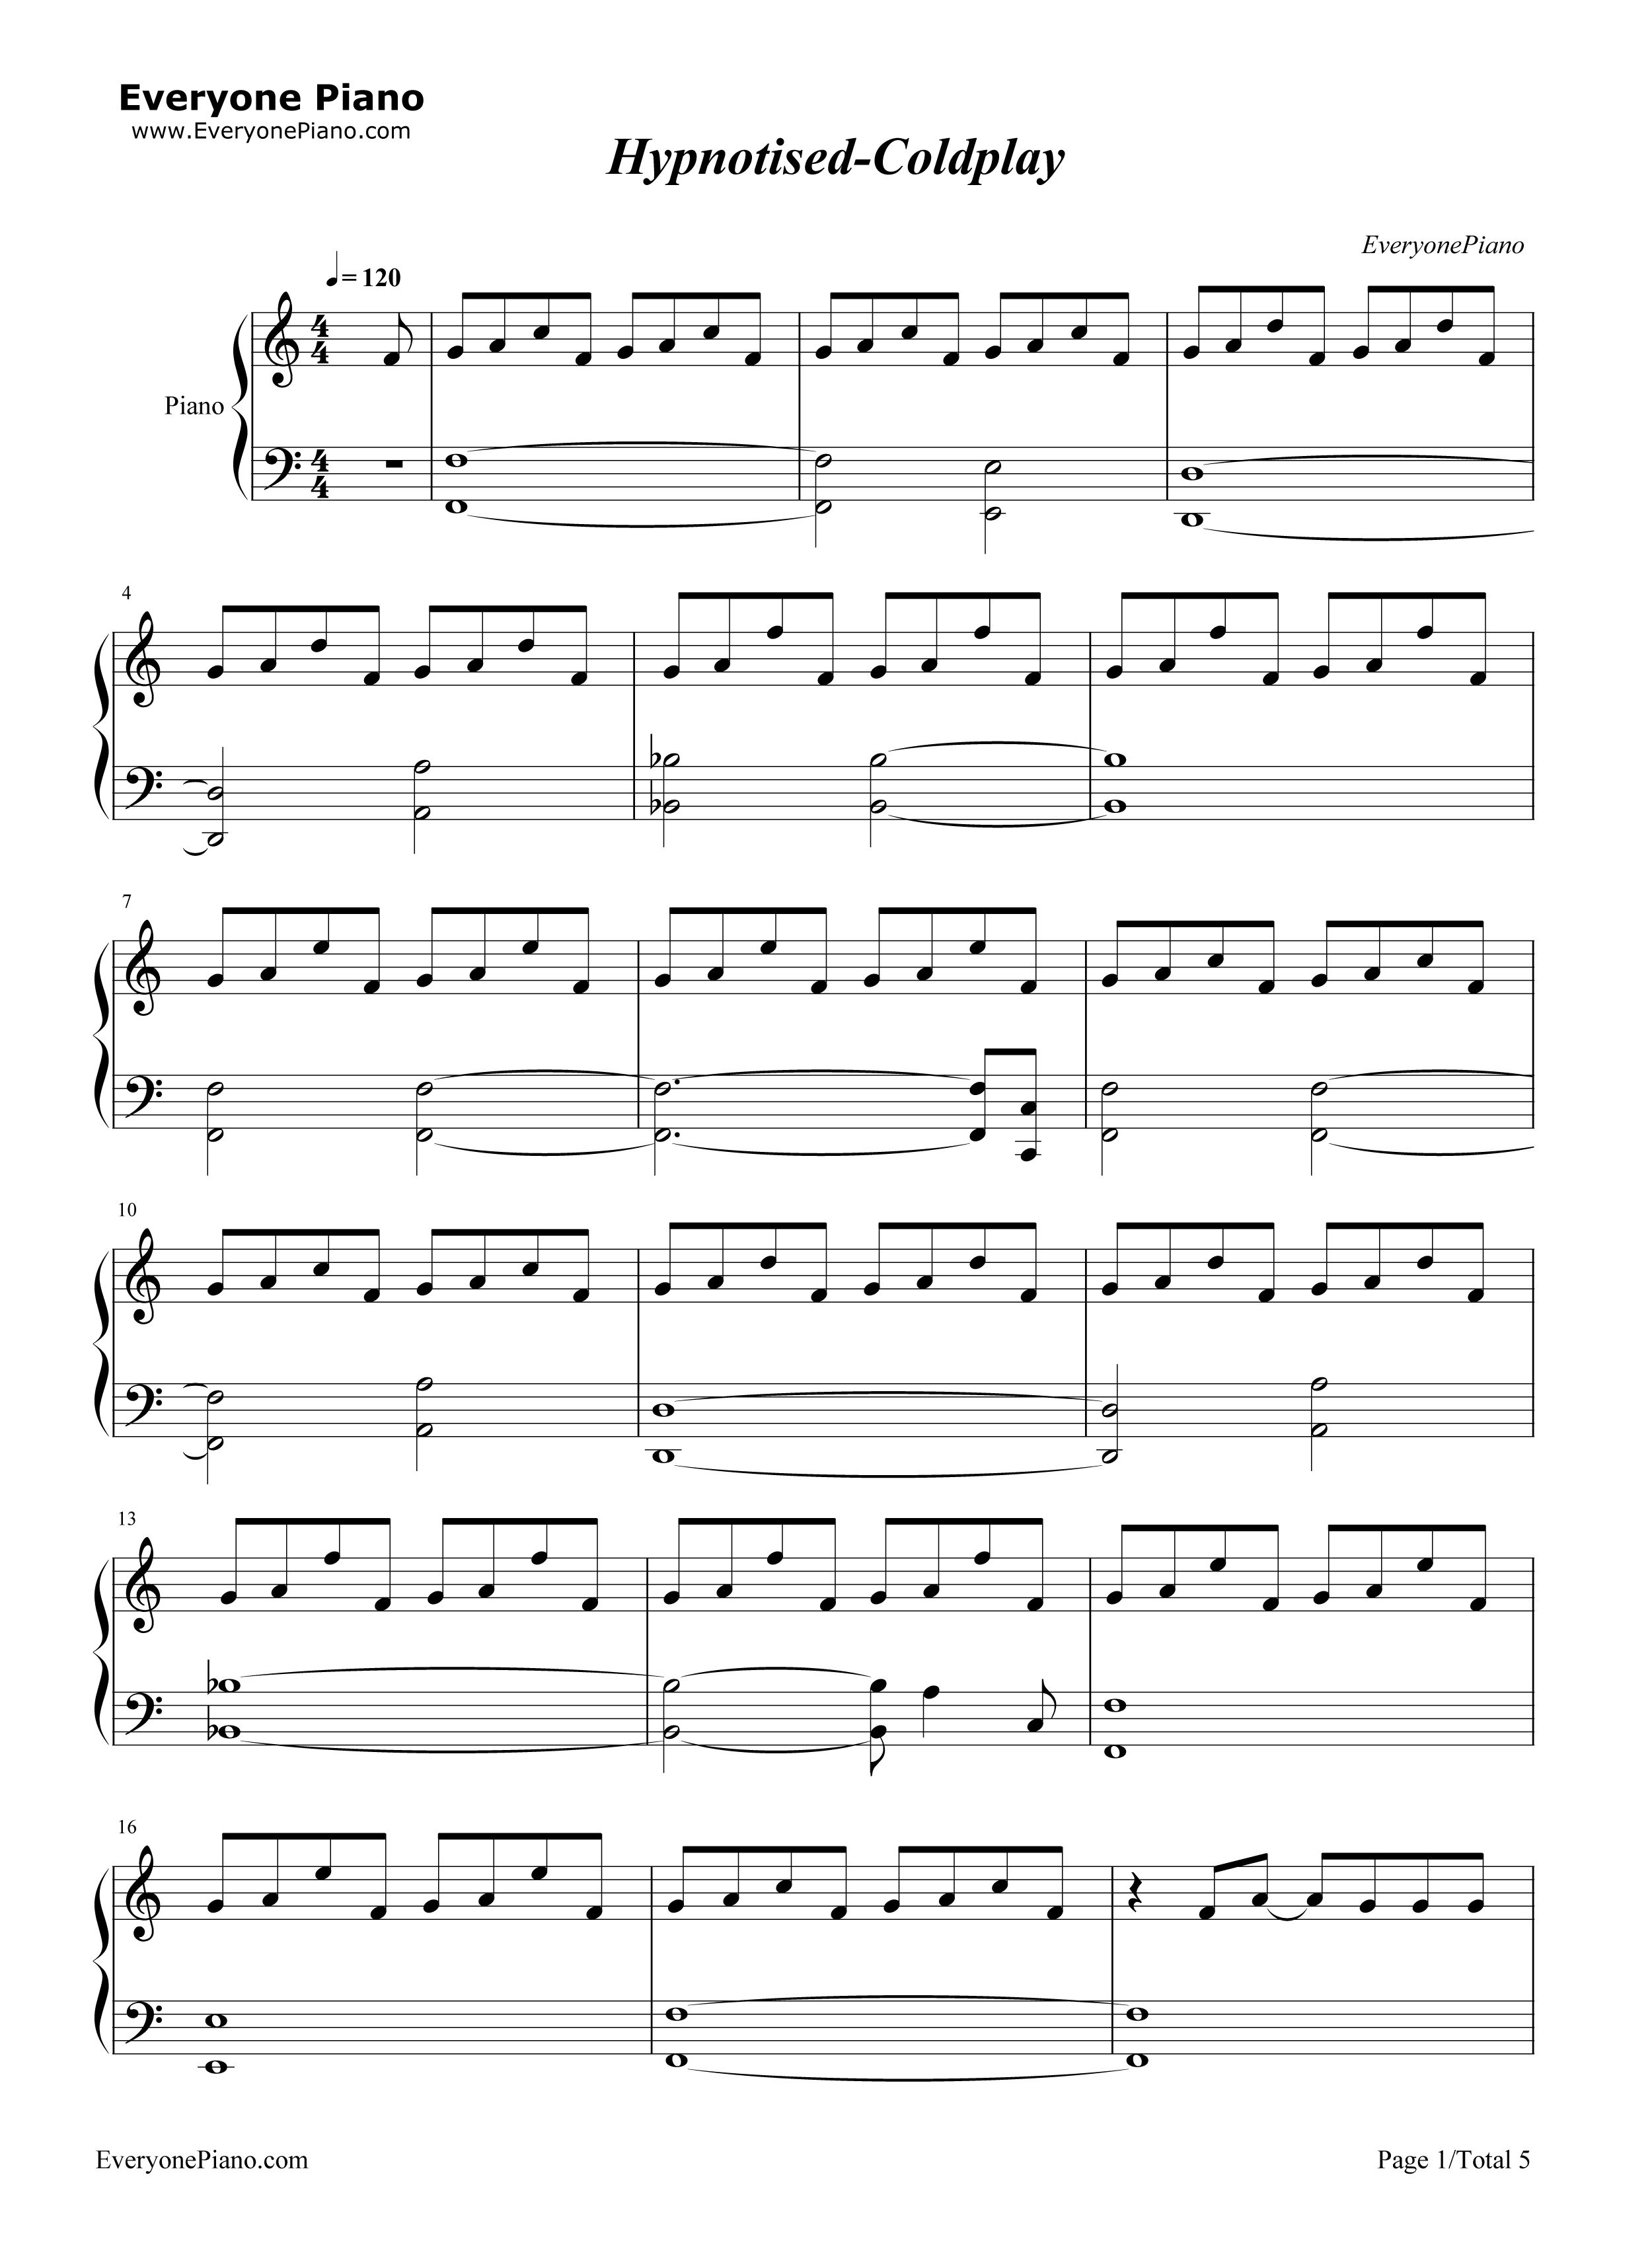 Hypnotised coldplay stave preview 1 free piano sheet music listen now print sheet hypnotised coldplay stave preview 1 hexwebz Gallery